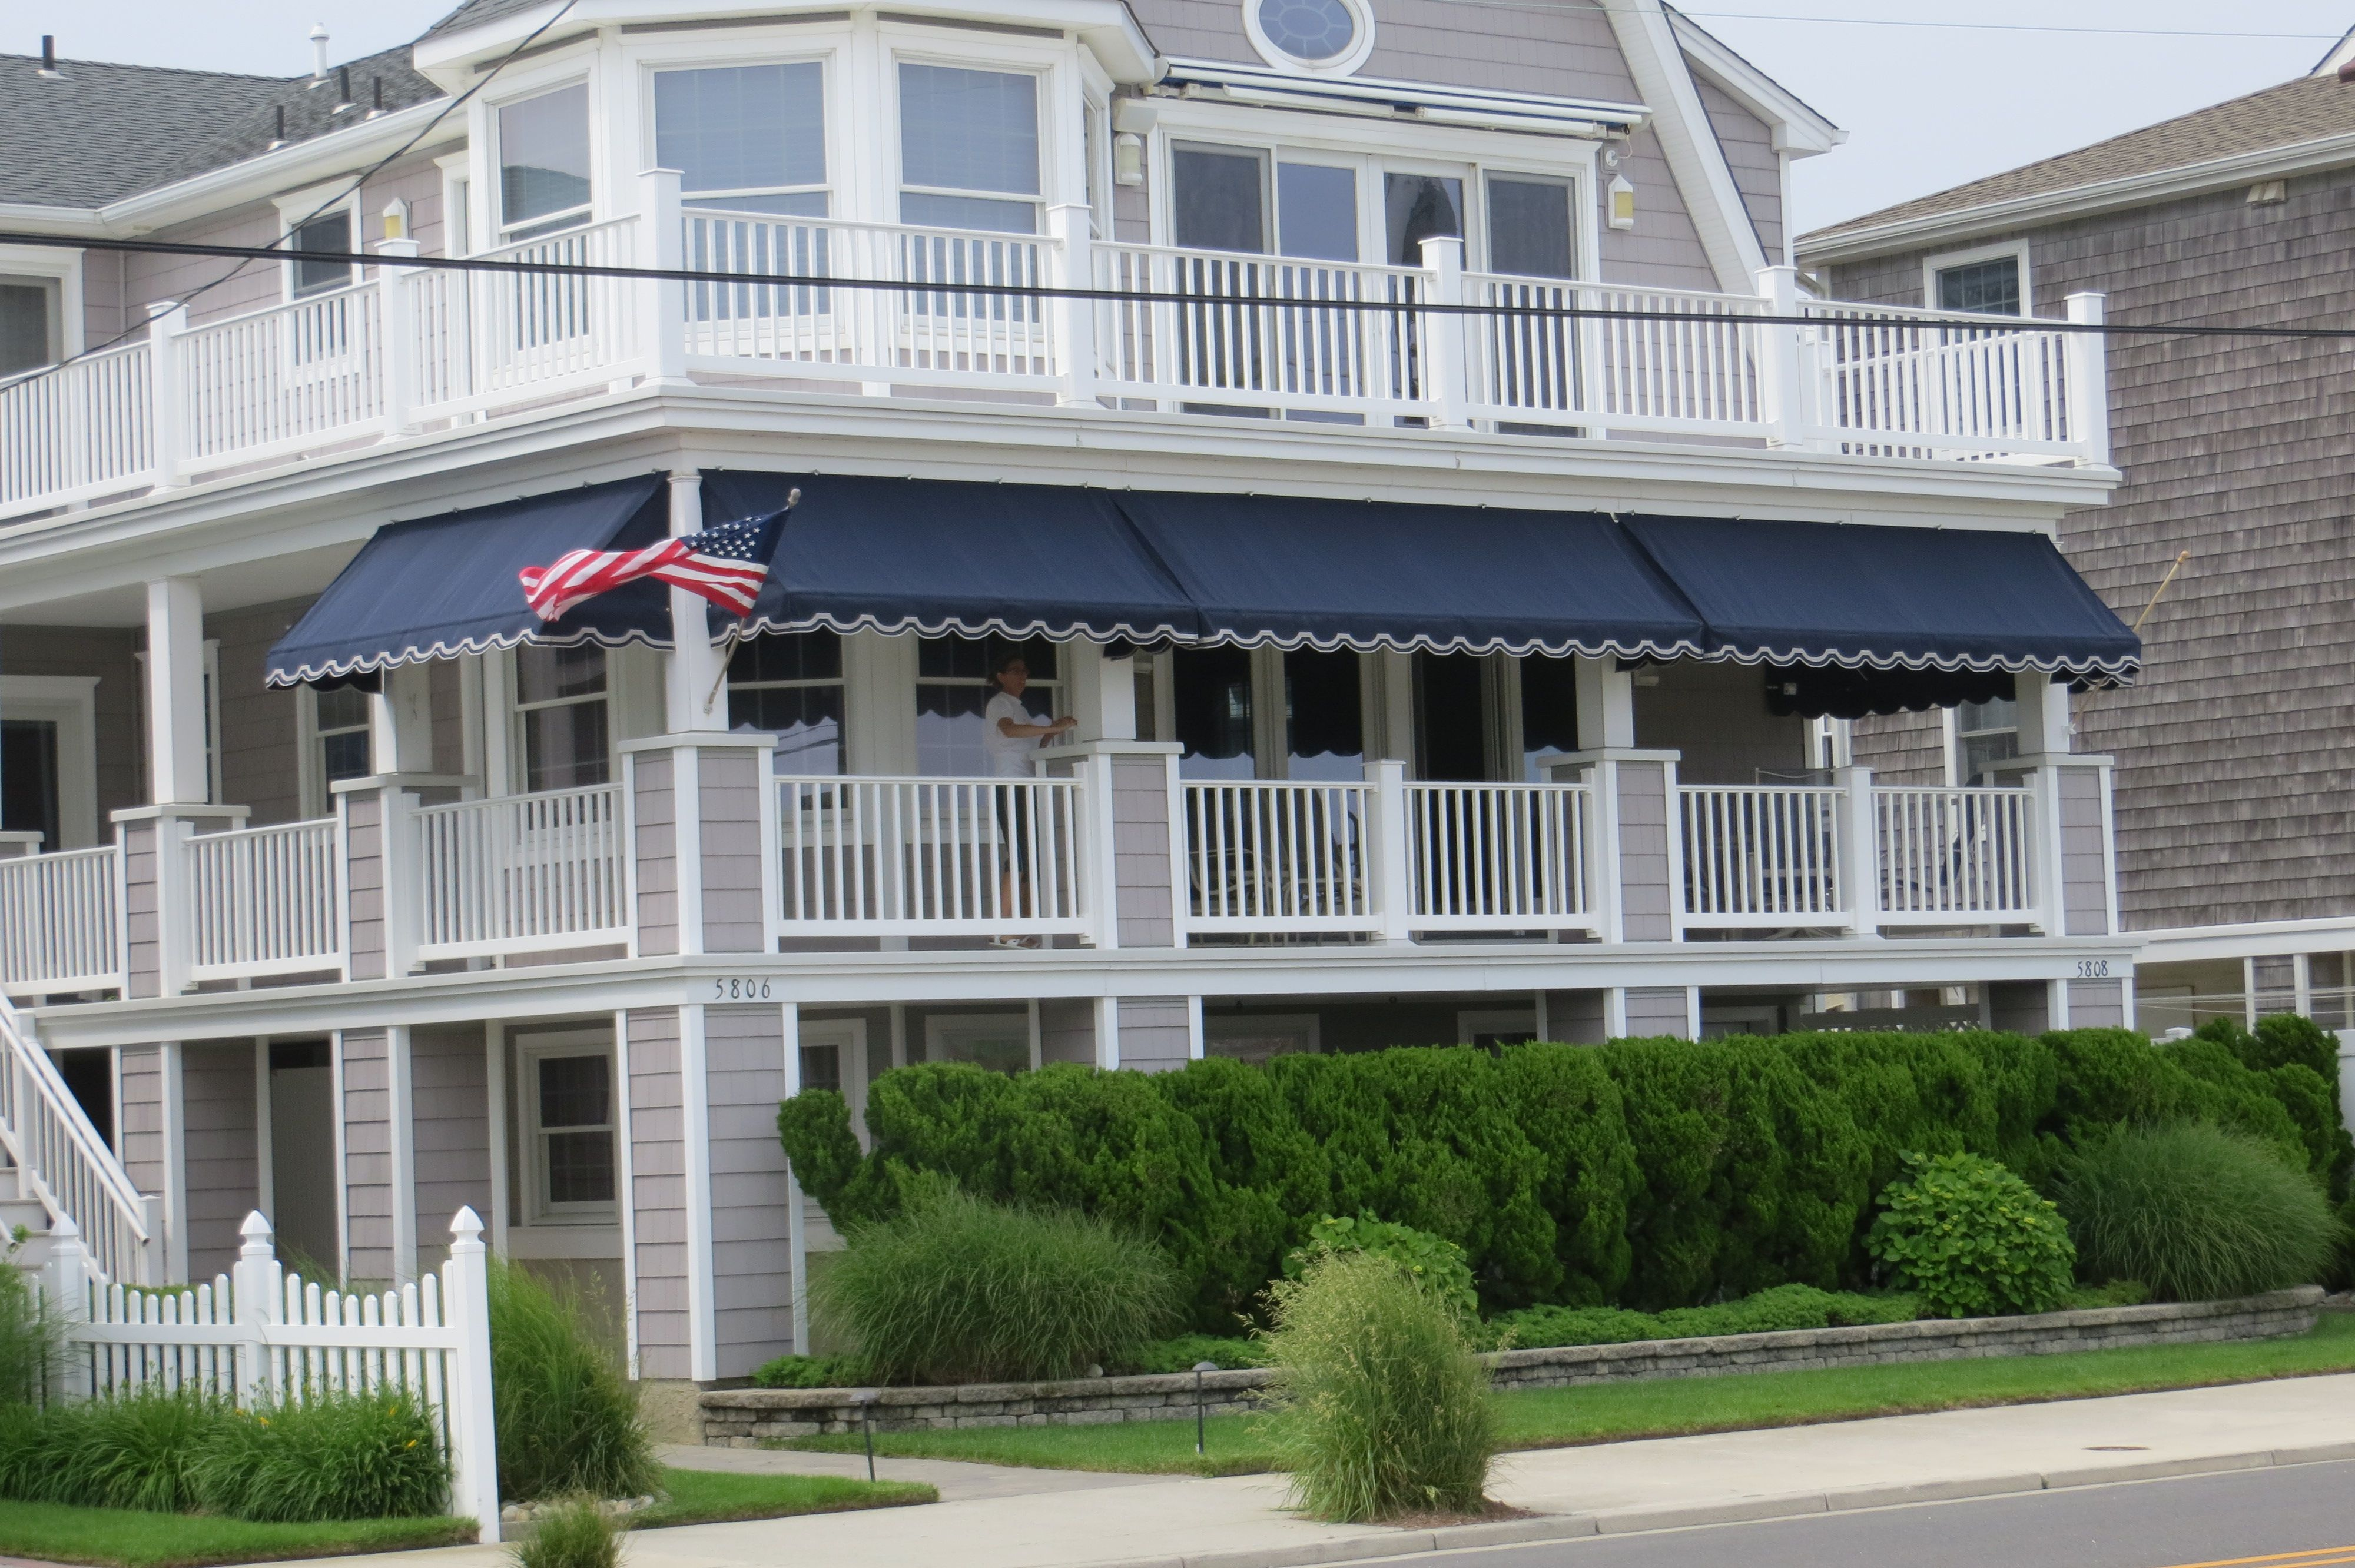 Residential Awnings Residential Awnings Porch Awning Awning Shade